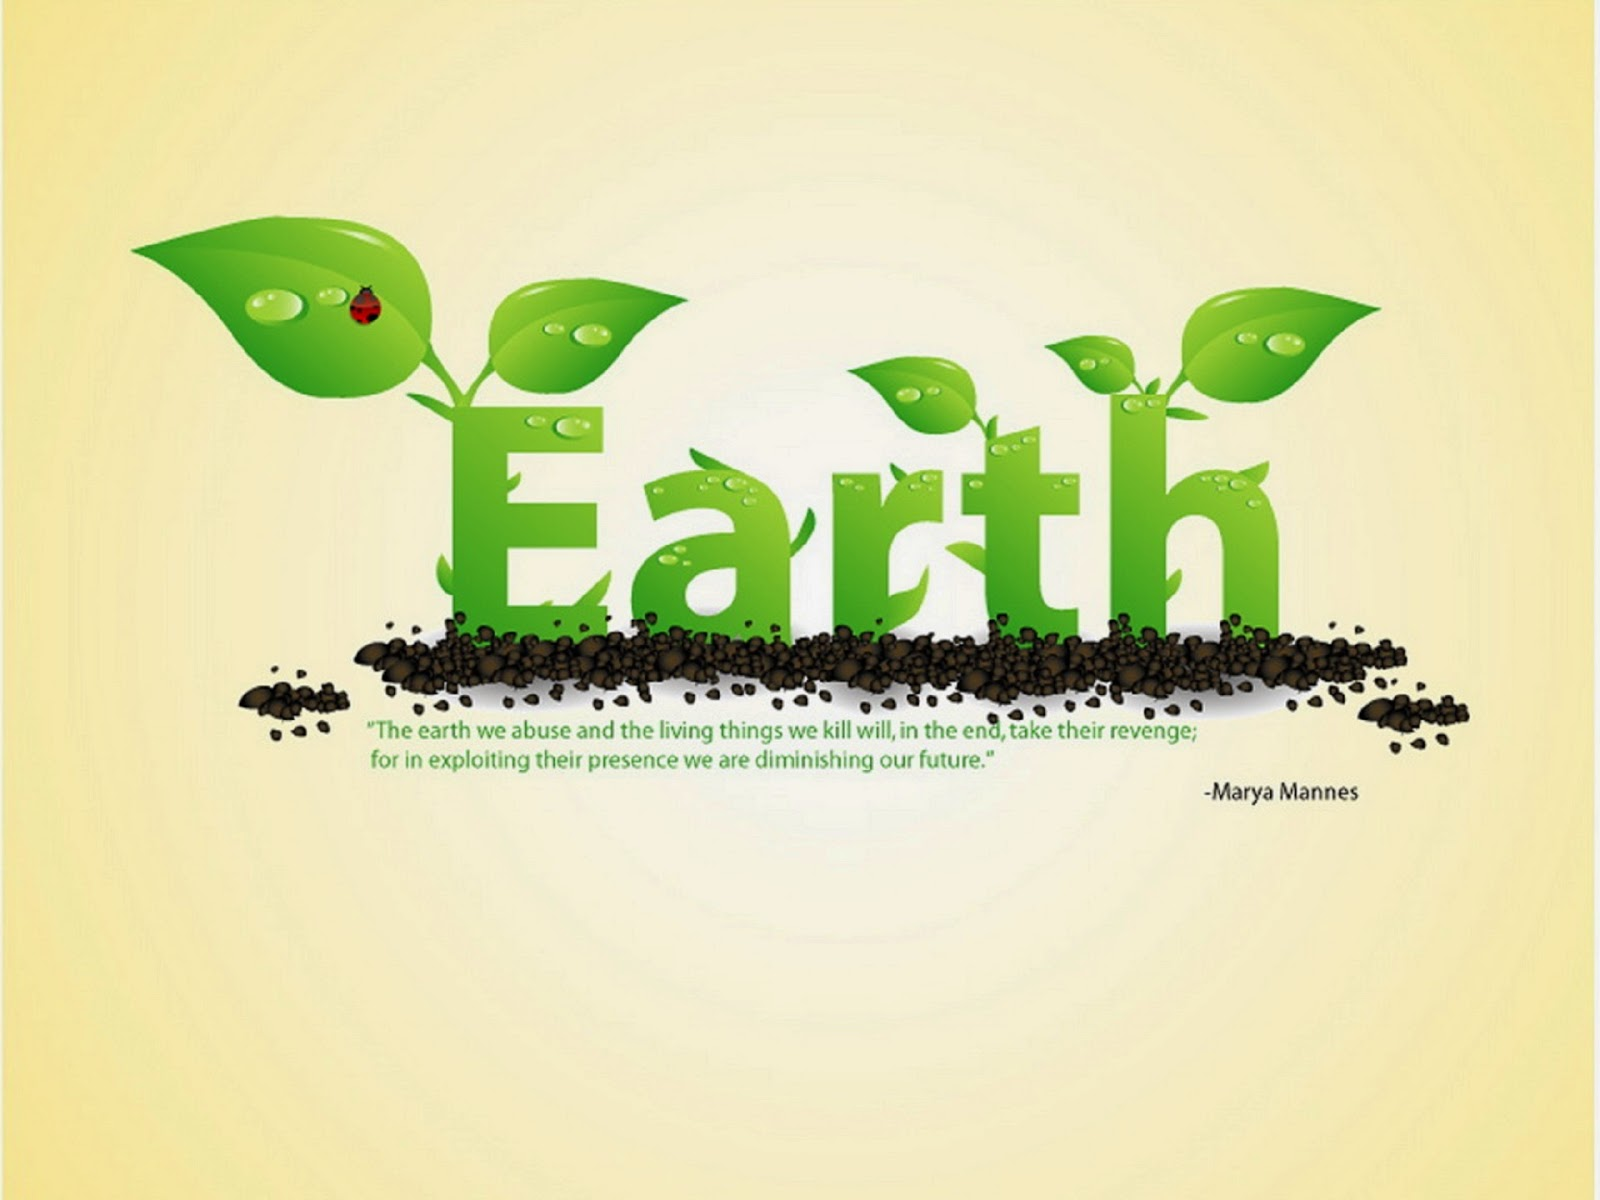 Earth Day Wallpaper and Background Image 1600x1200 ID691130 1600x1200